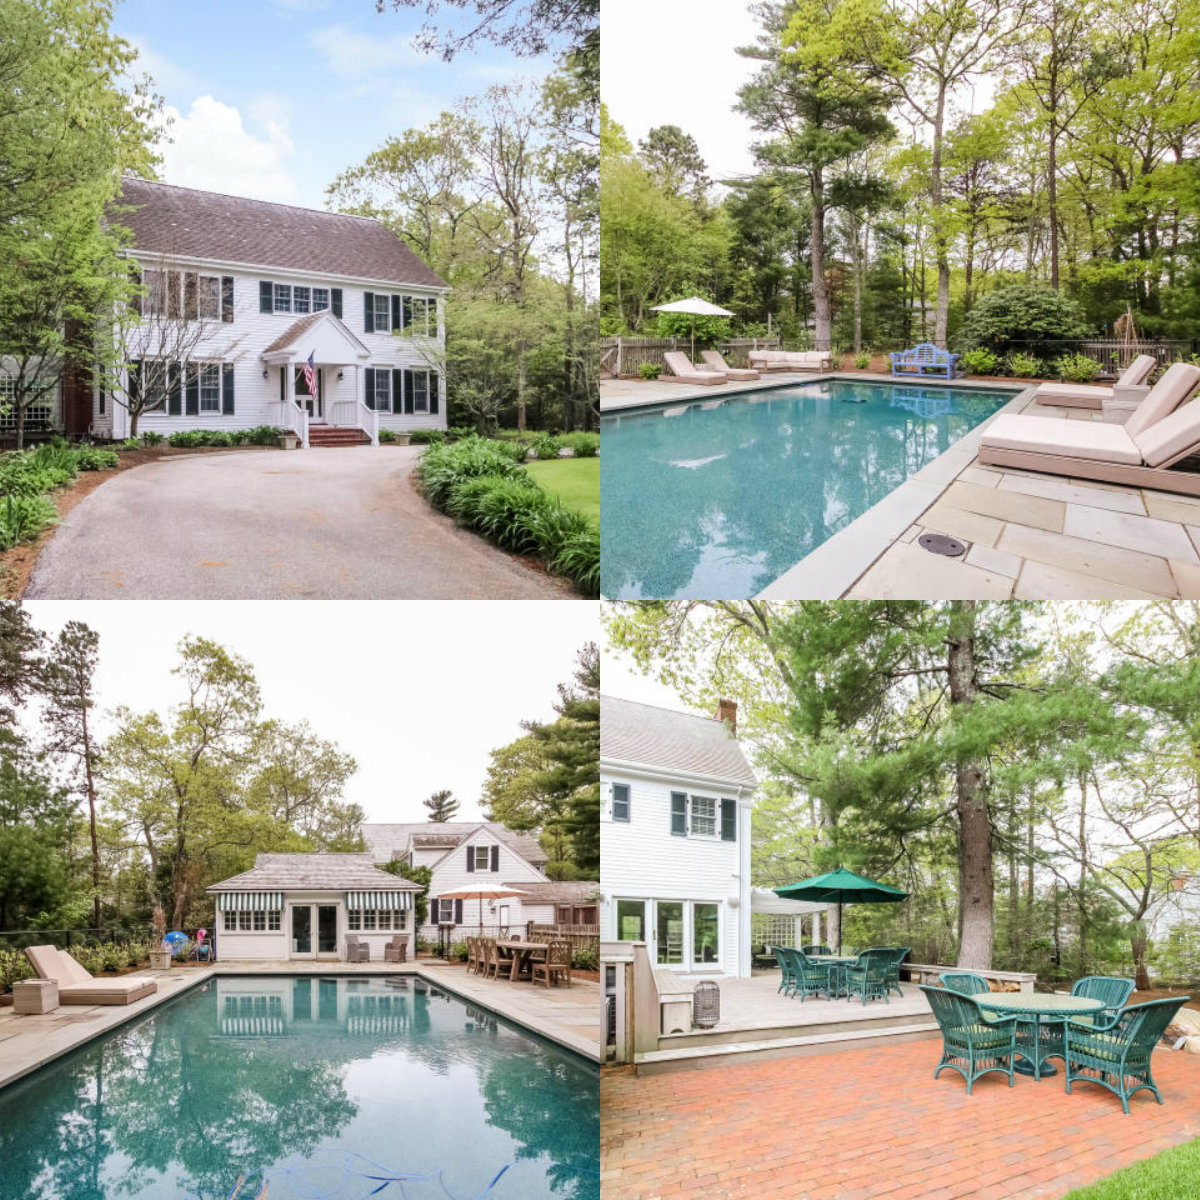 Images of pool at 106 Whitman Road in Cotuit Cape Cod MA